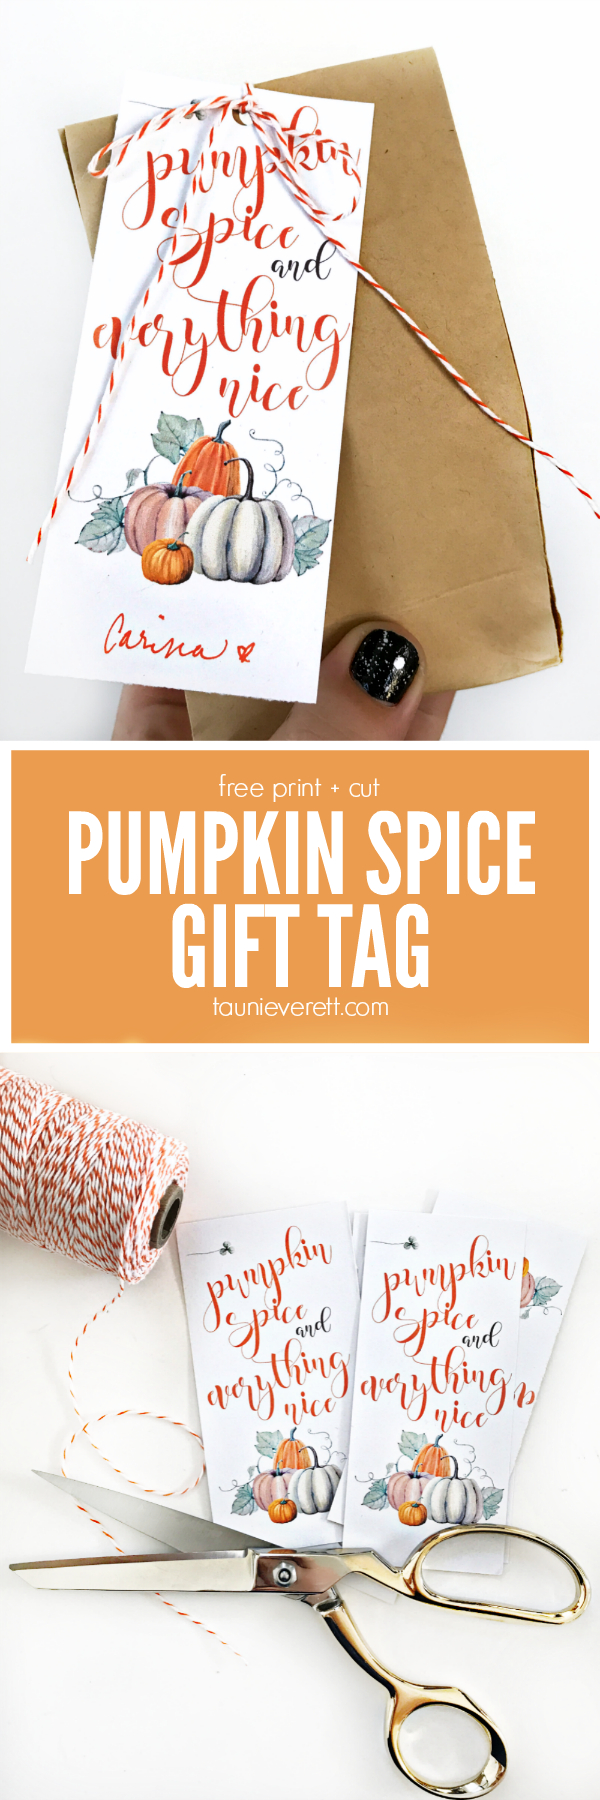 Pumpkin Spice And Everything Nice Gift Tag | Print - Turkey Day - Free Printable Pumpkin Gift Tags